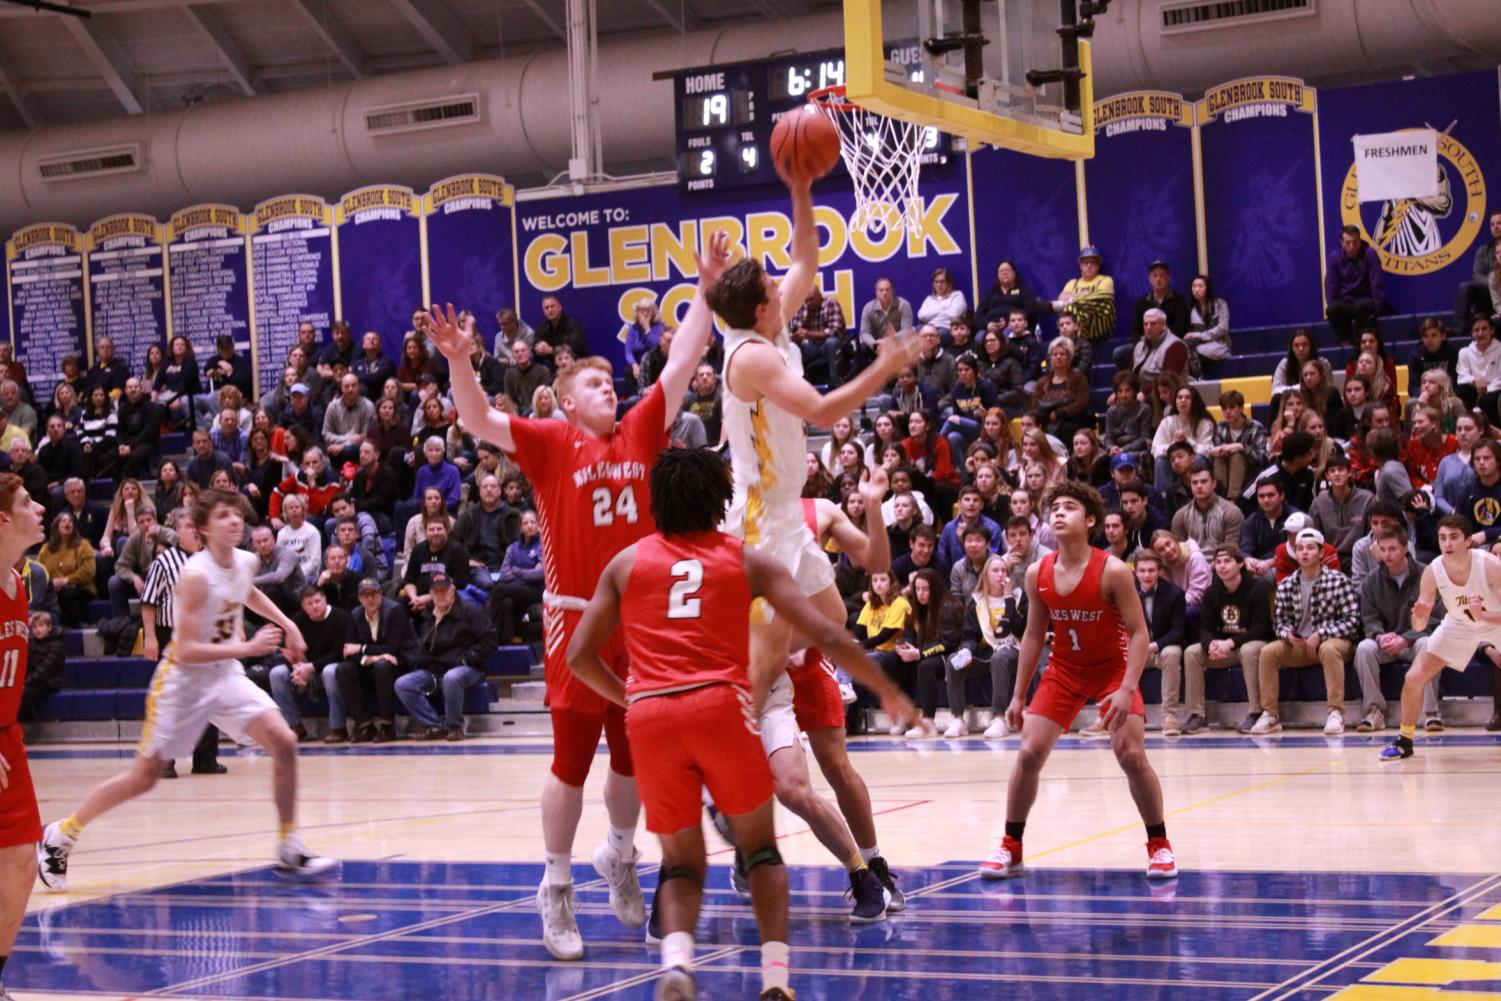 Bringing in Baskets: Jumping to the basket, senior Dominic Martinelli goes for the shot following senior Joe Shapiro's injury on Dec. 13. South won 66 - 35 against Niles West. Photo by Nicole Surcel